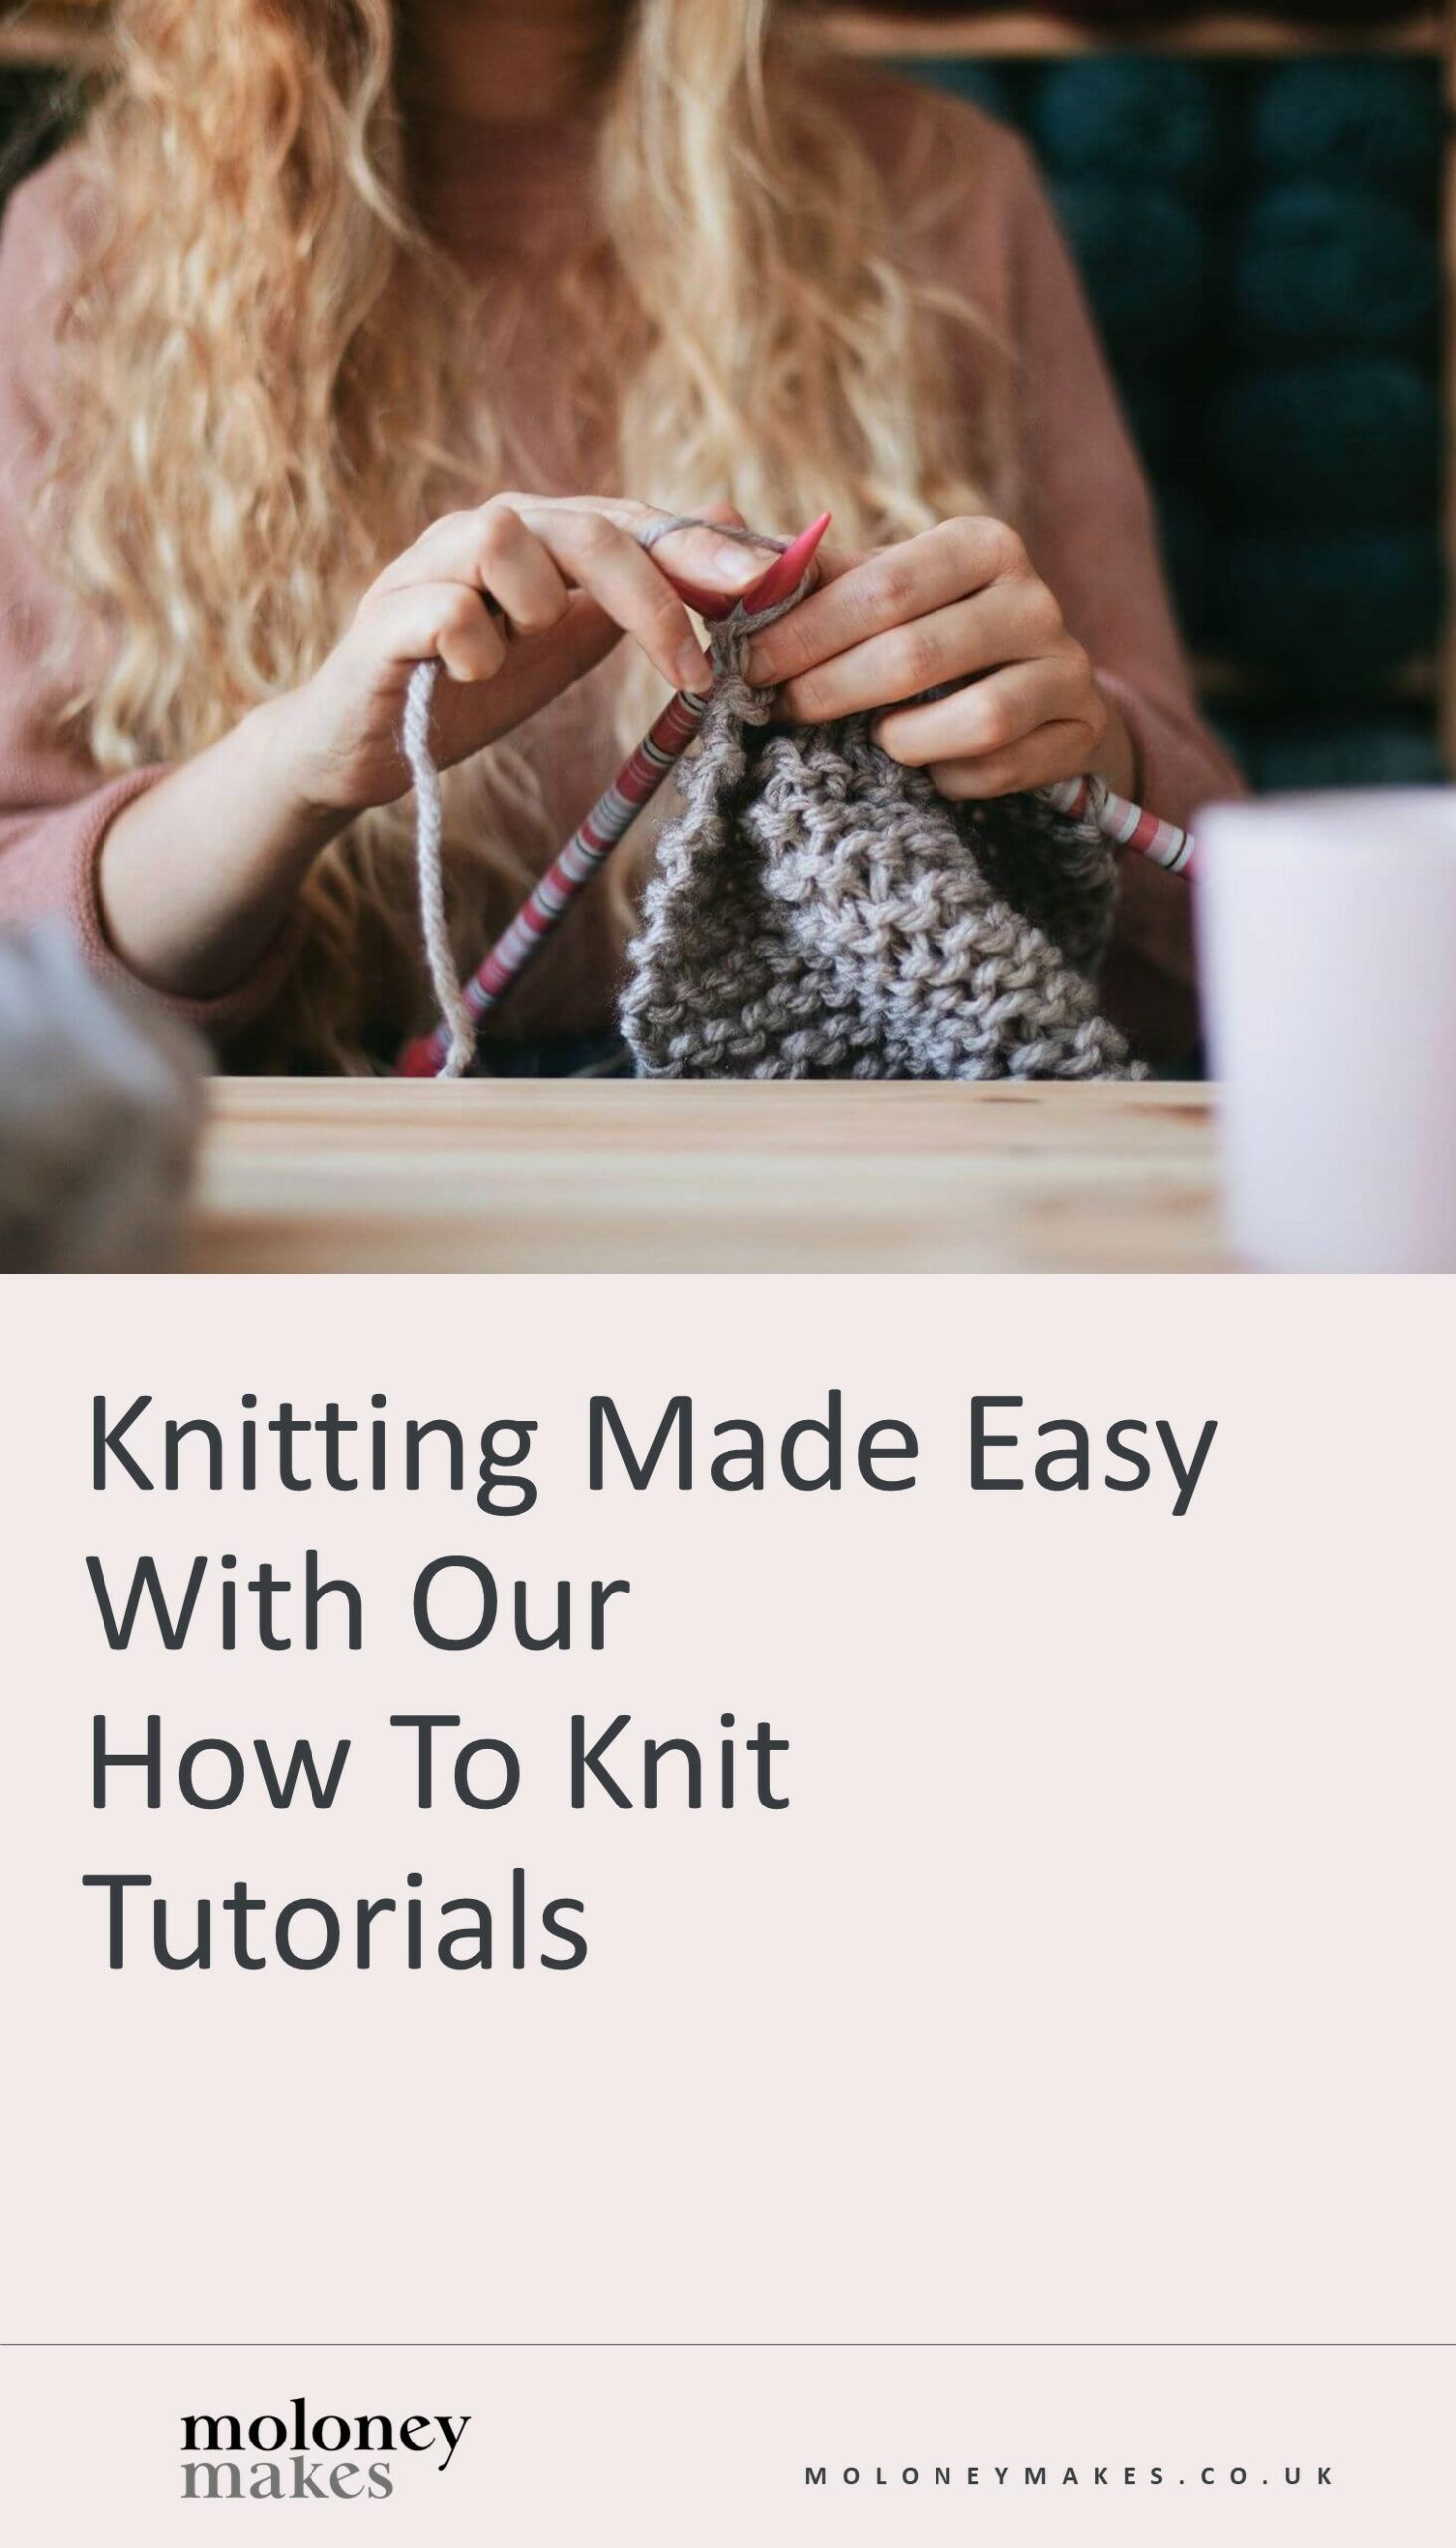 knitting made easy with our how to knit tutorials blog post pinterest graphic